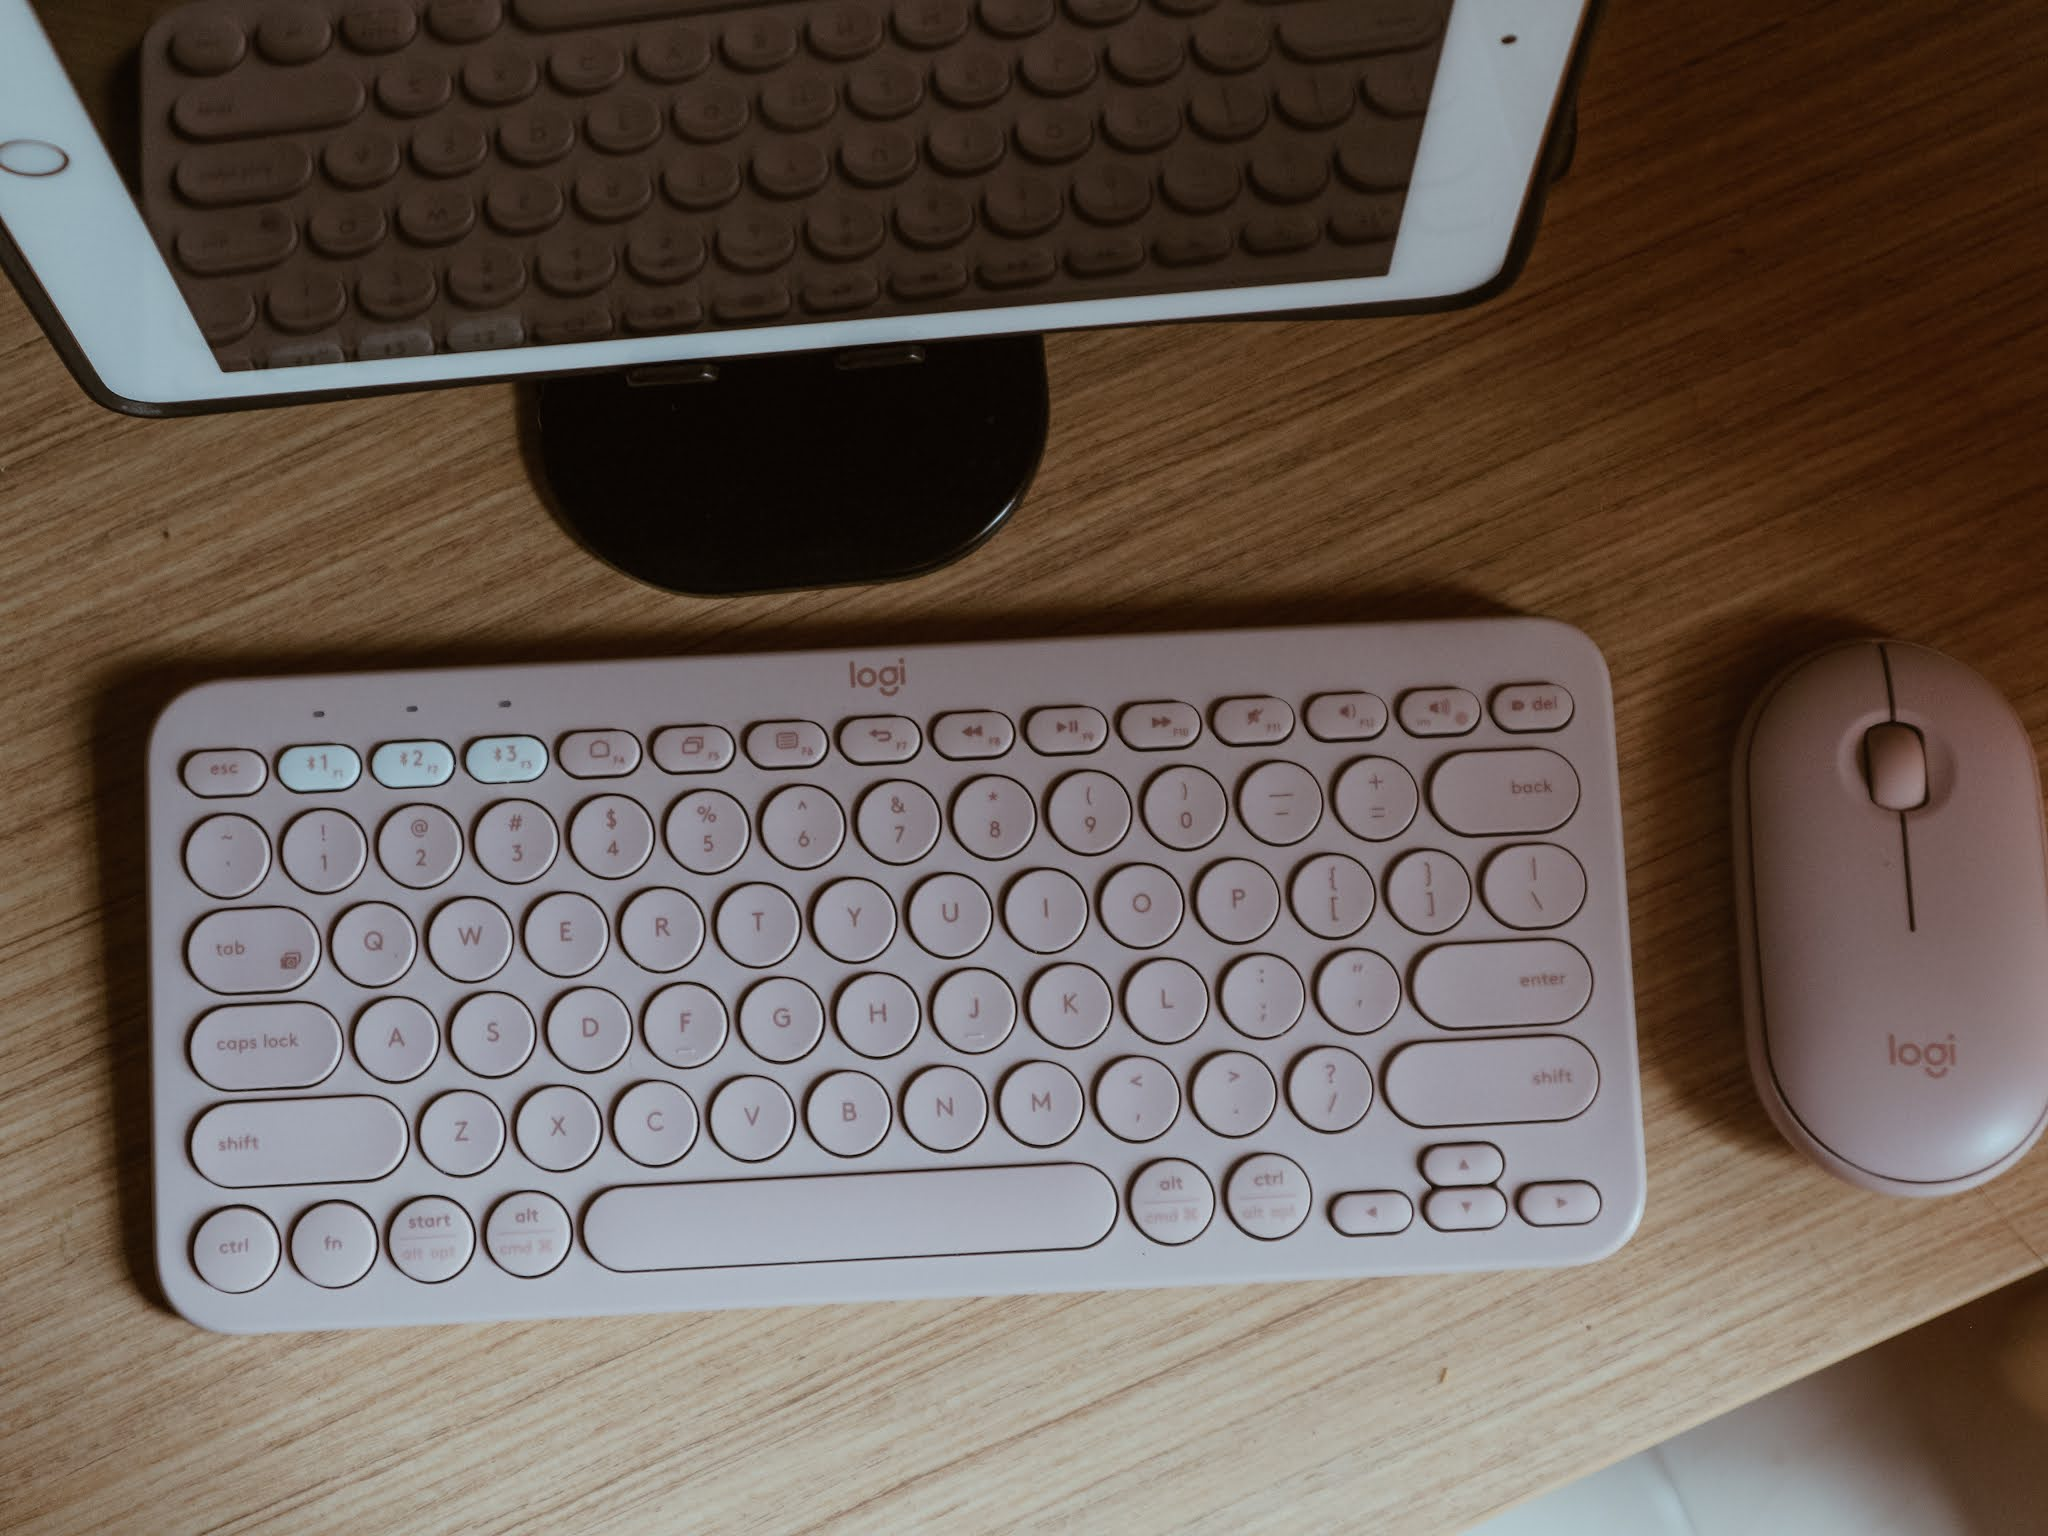 Review Logitech K380 Indonesia